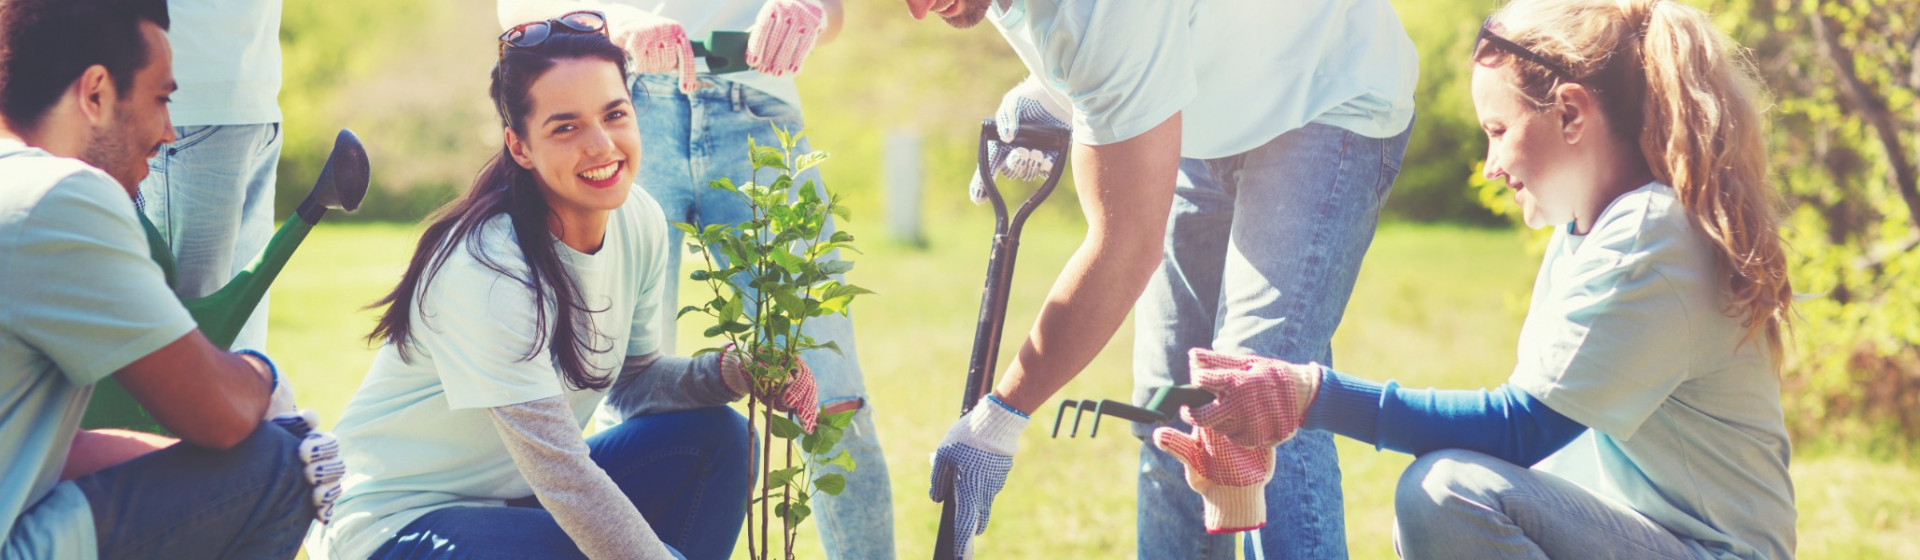 Group-of-people-digging-a-hole-to-plant-a-tree2.jpg